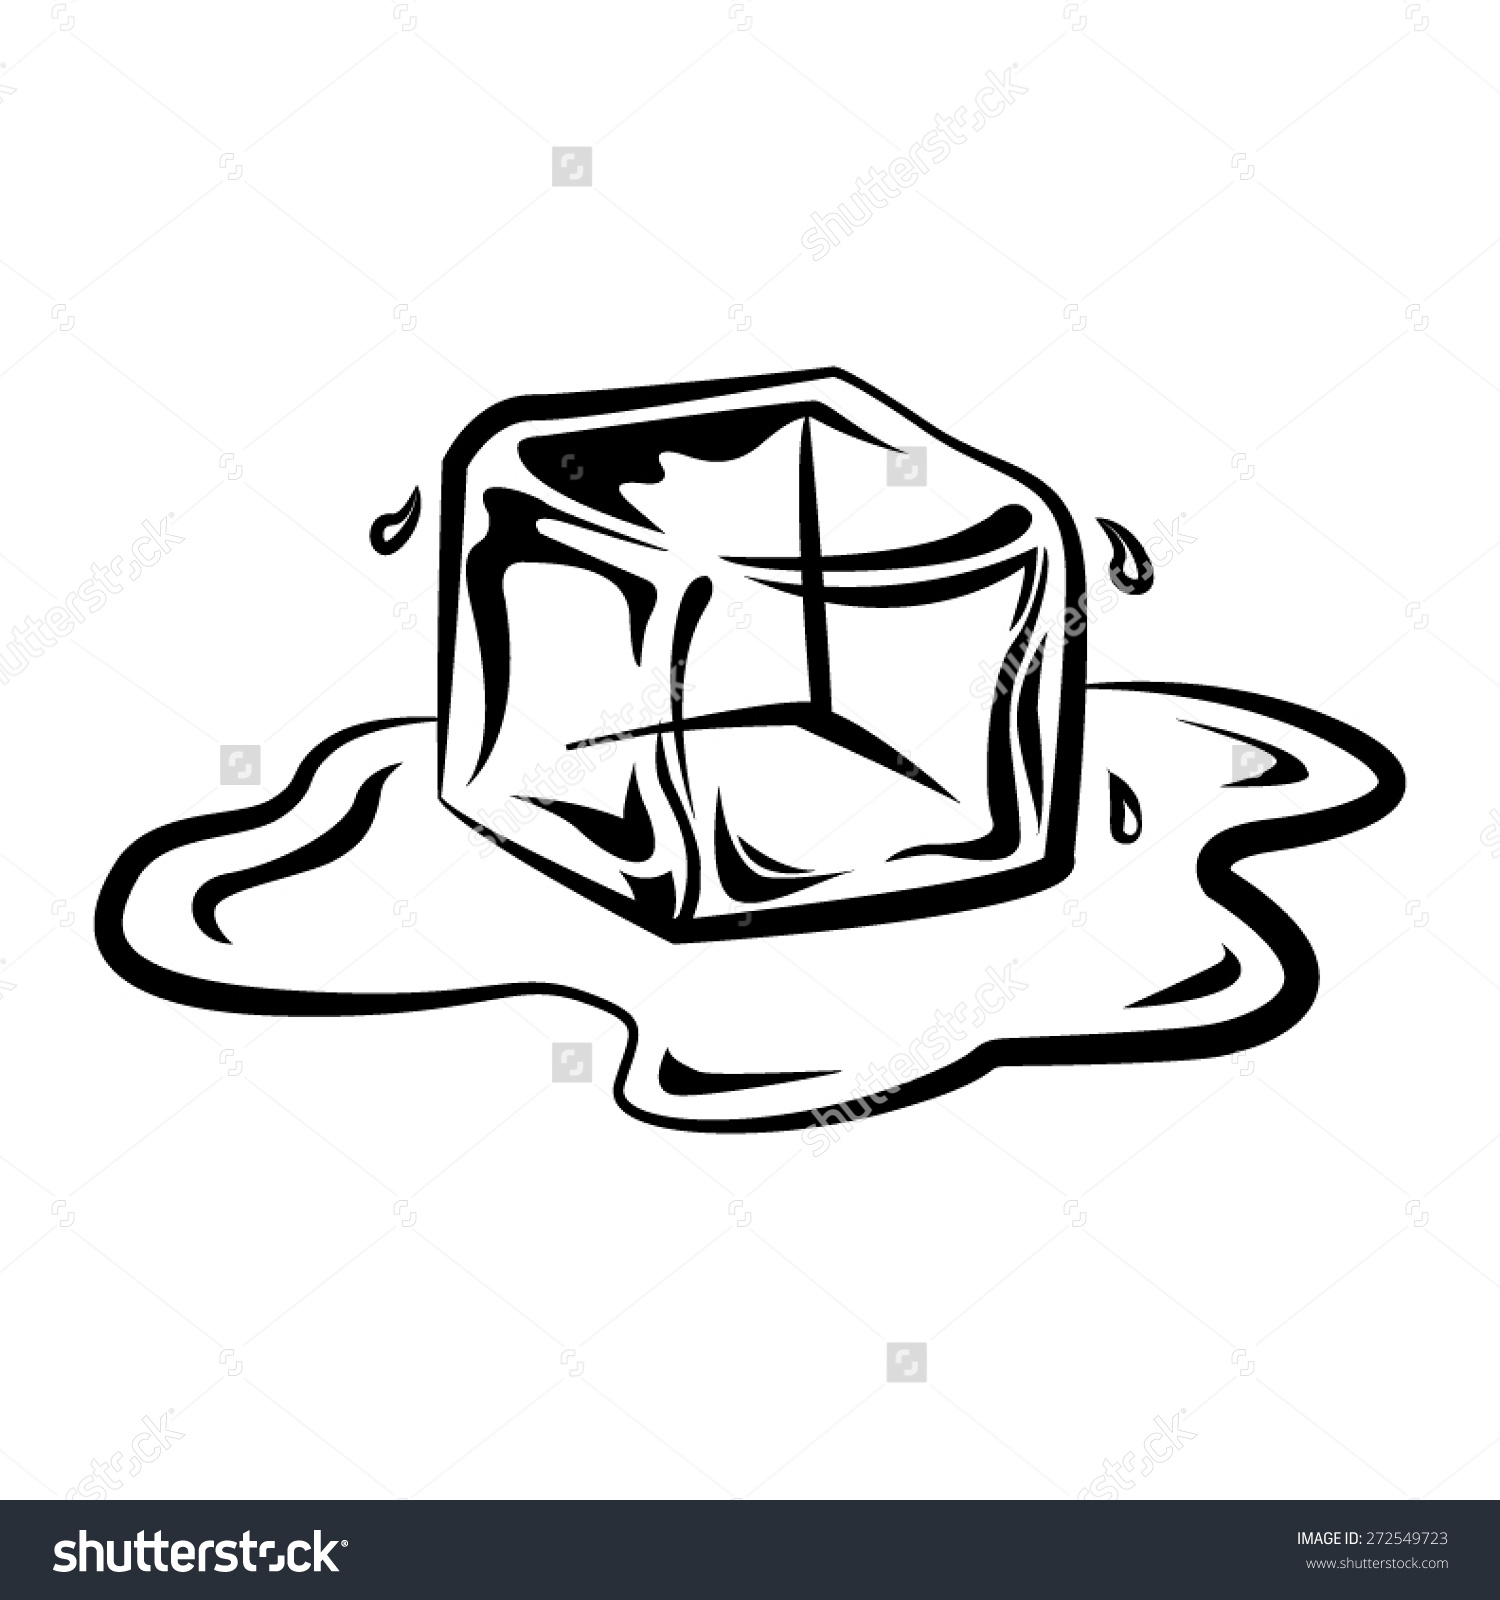 Ice clipart drawing. Black and white